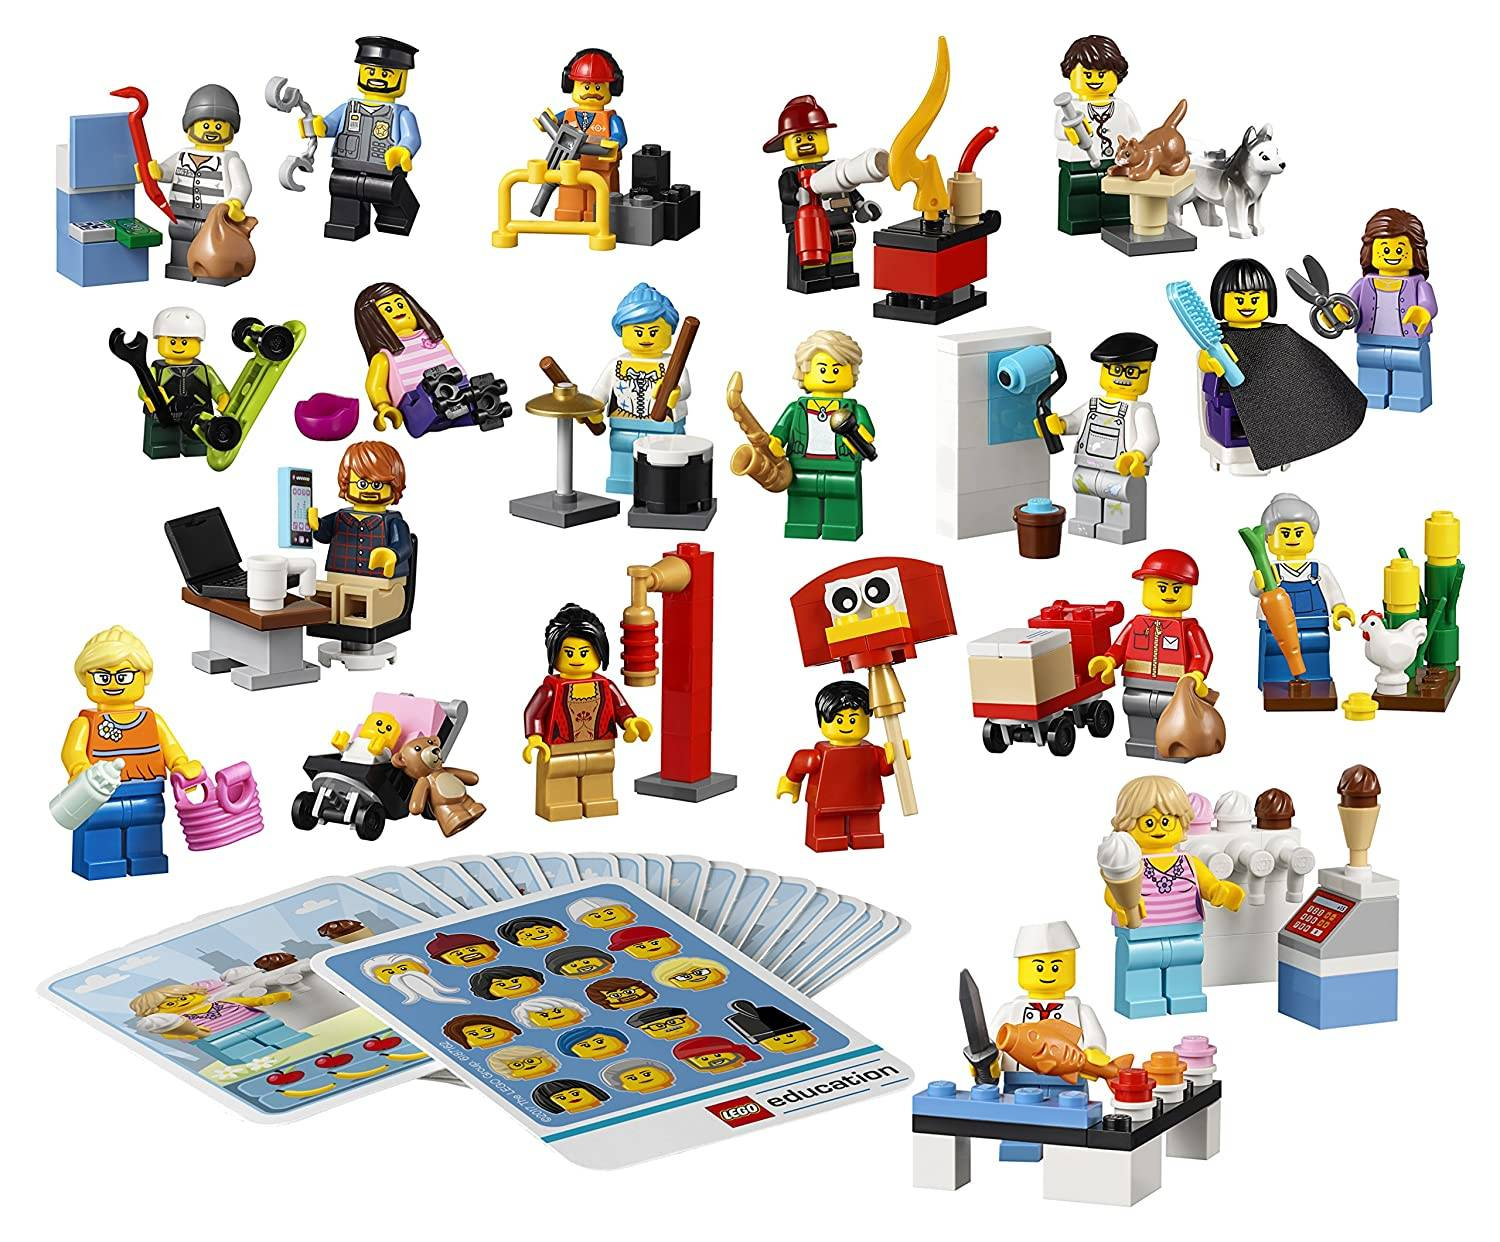 LEGO occupation Minifigures